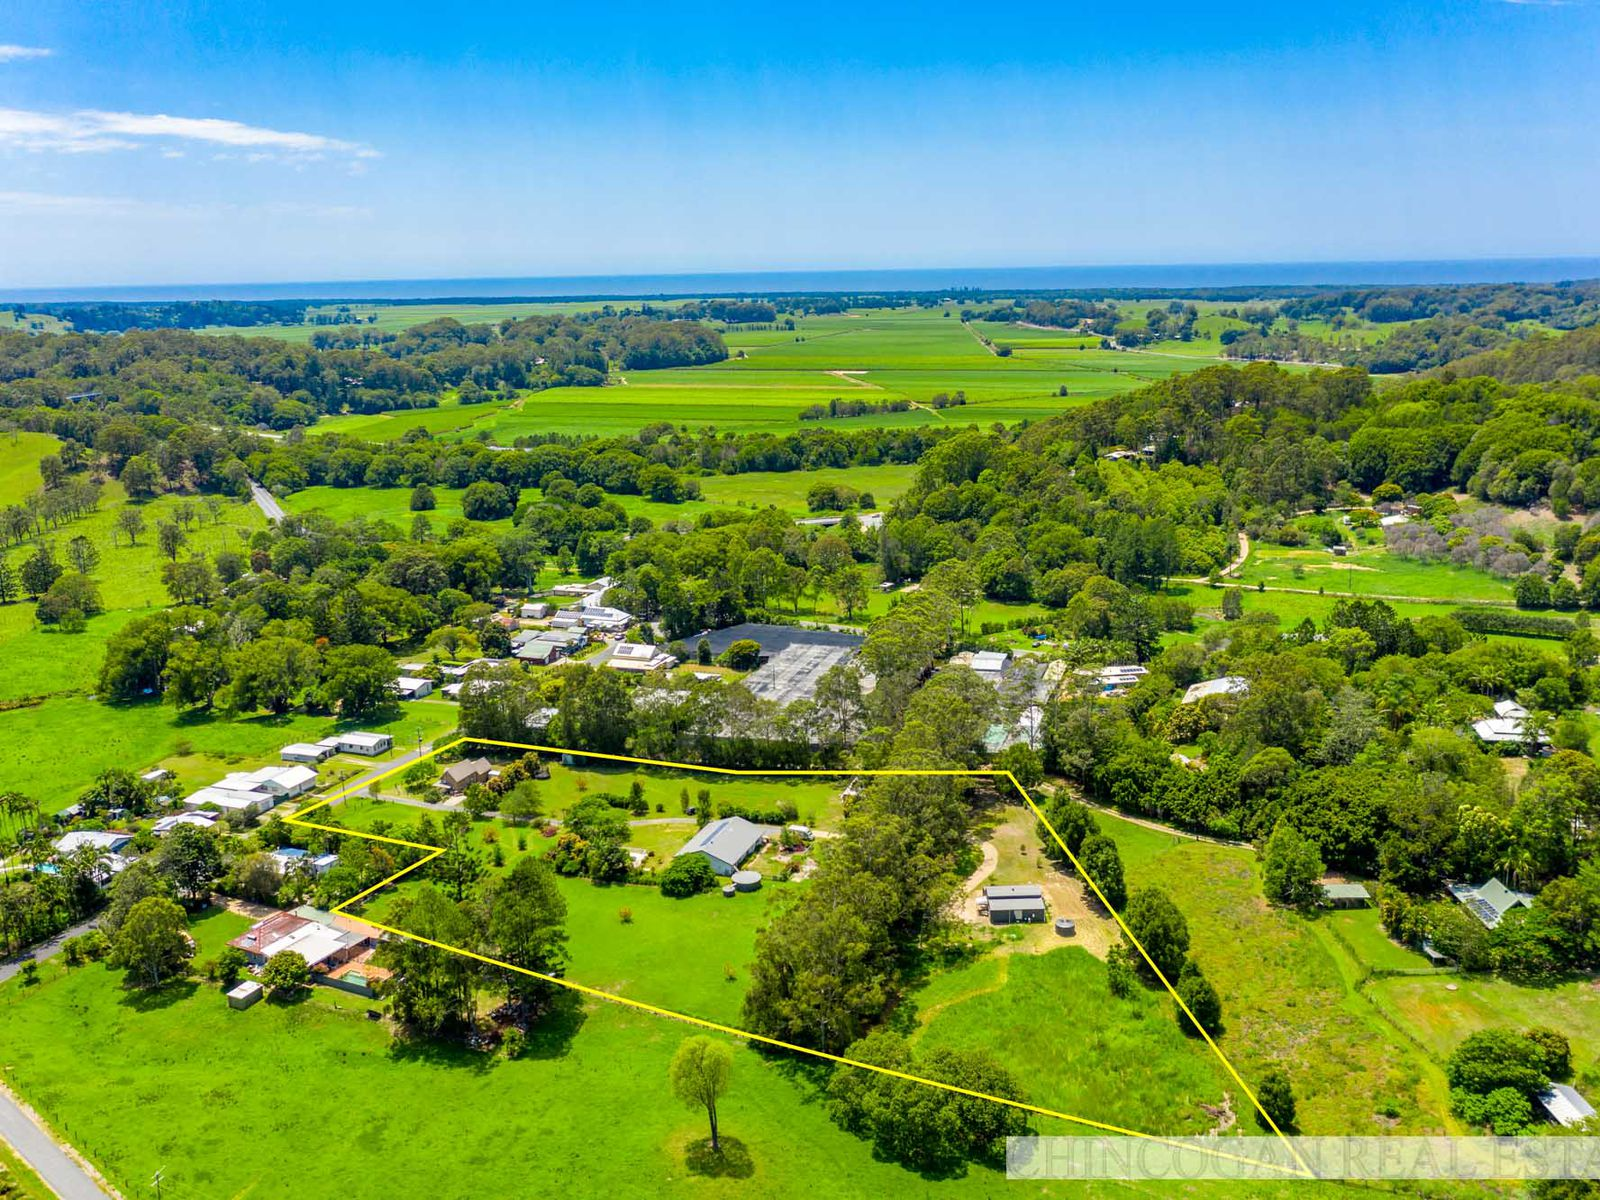 45 Crabbes Creek Rd, Crabbes Creek